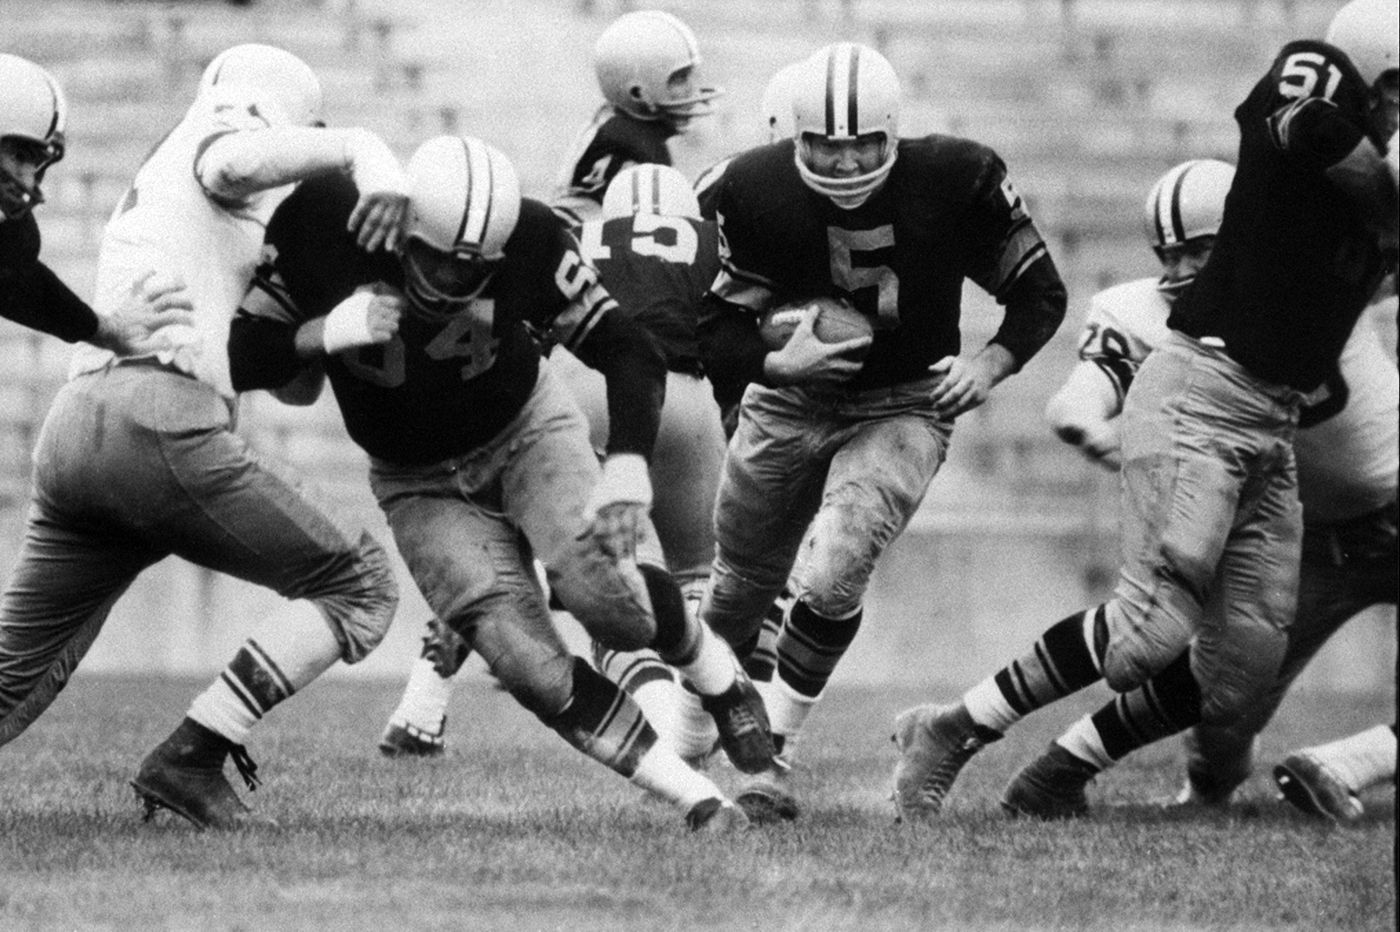 Hall of Fame running back Paul Hornung dies at 84